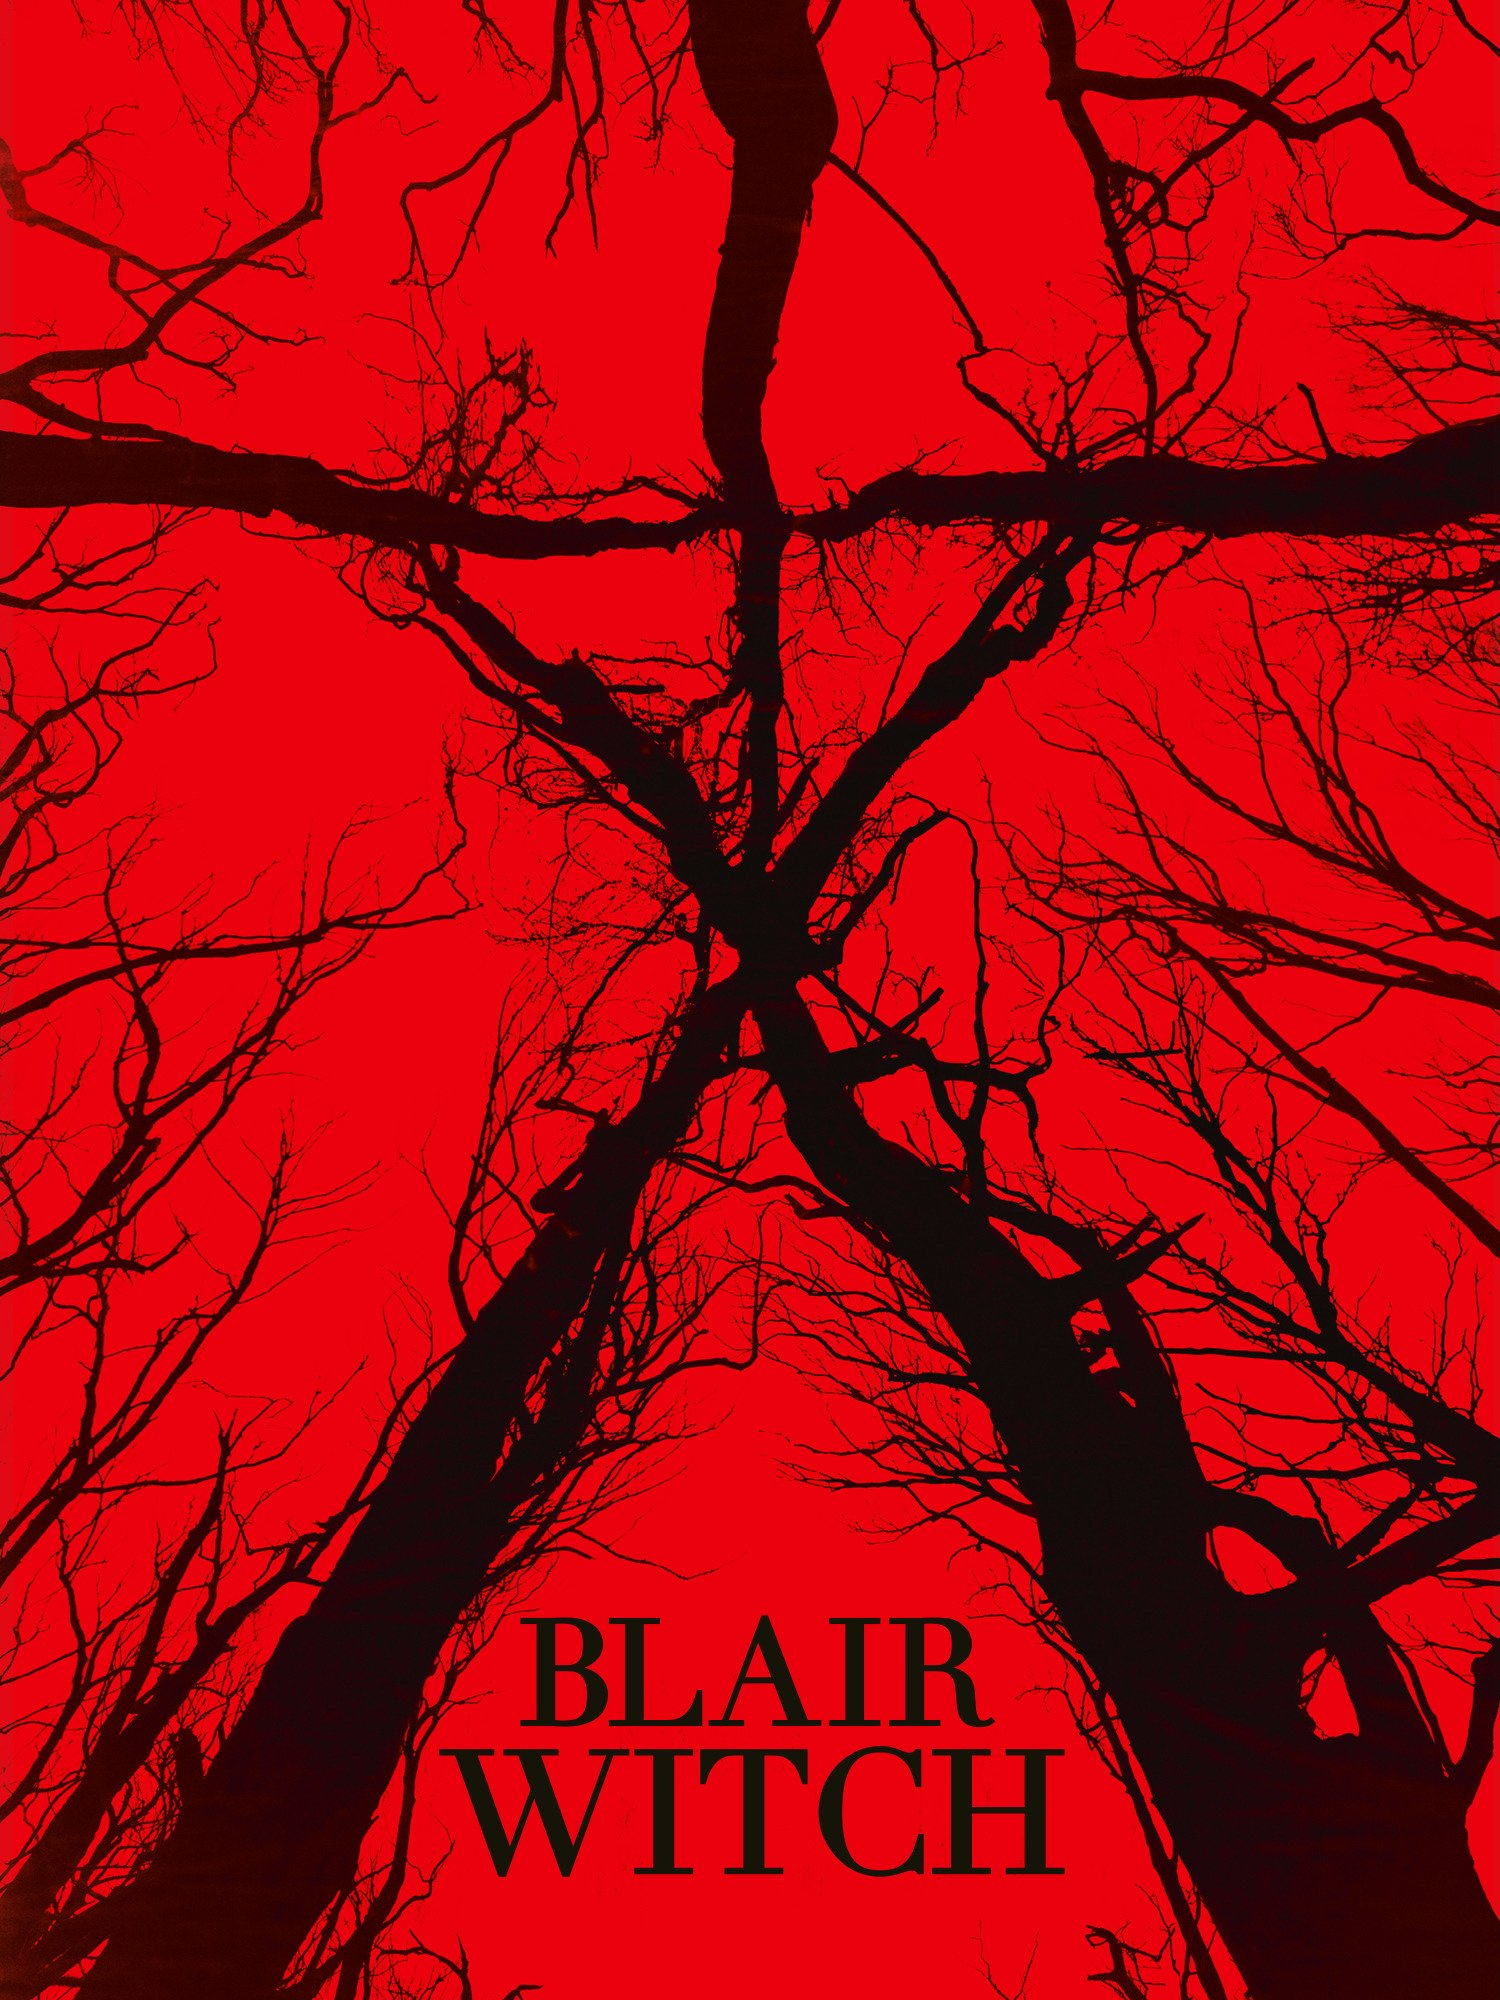 Amazon De Blair Witch Dt Ov Ansehen Prime Video